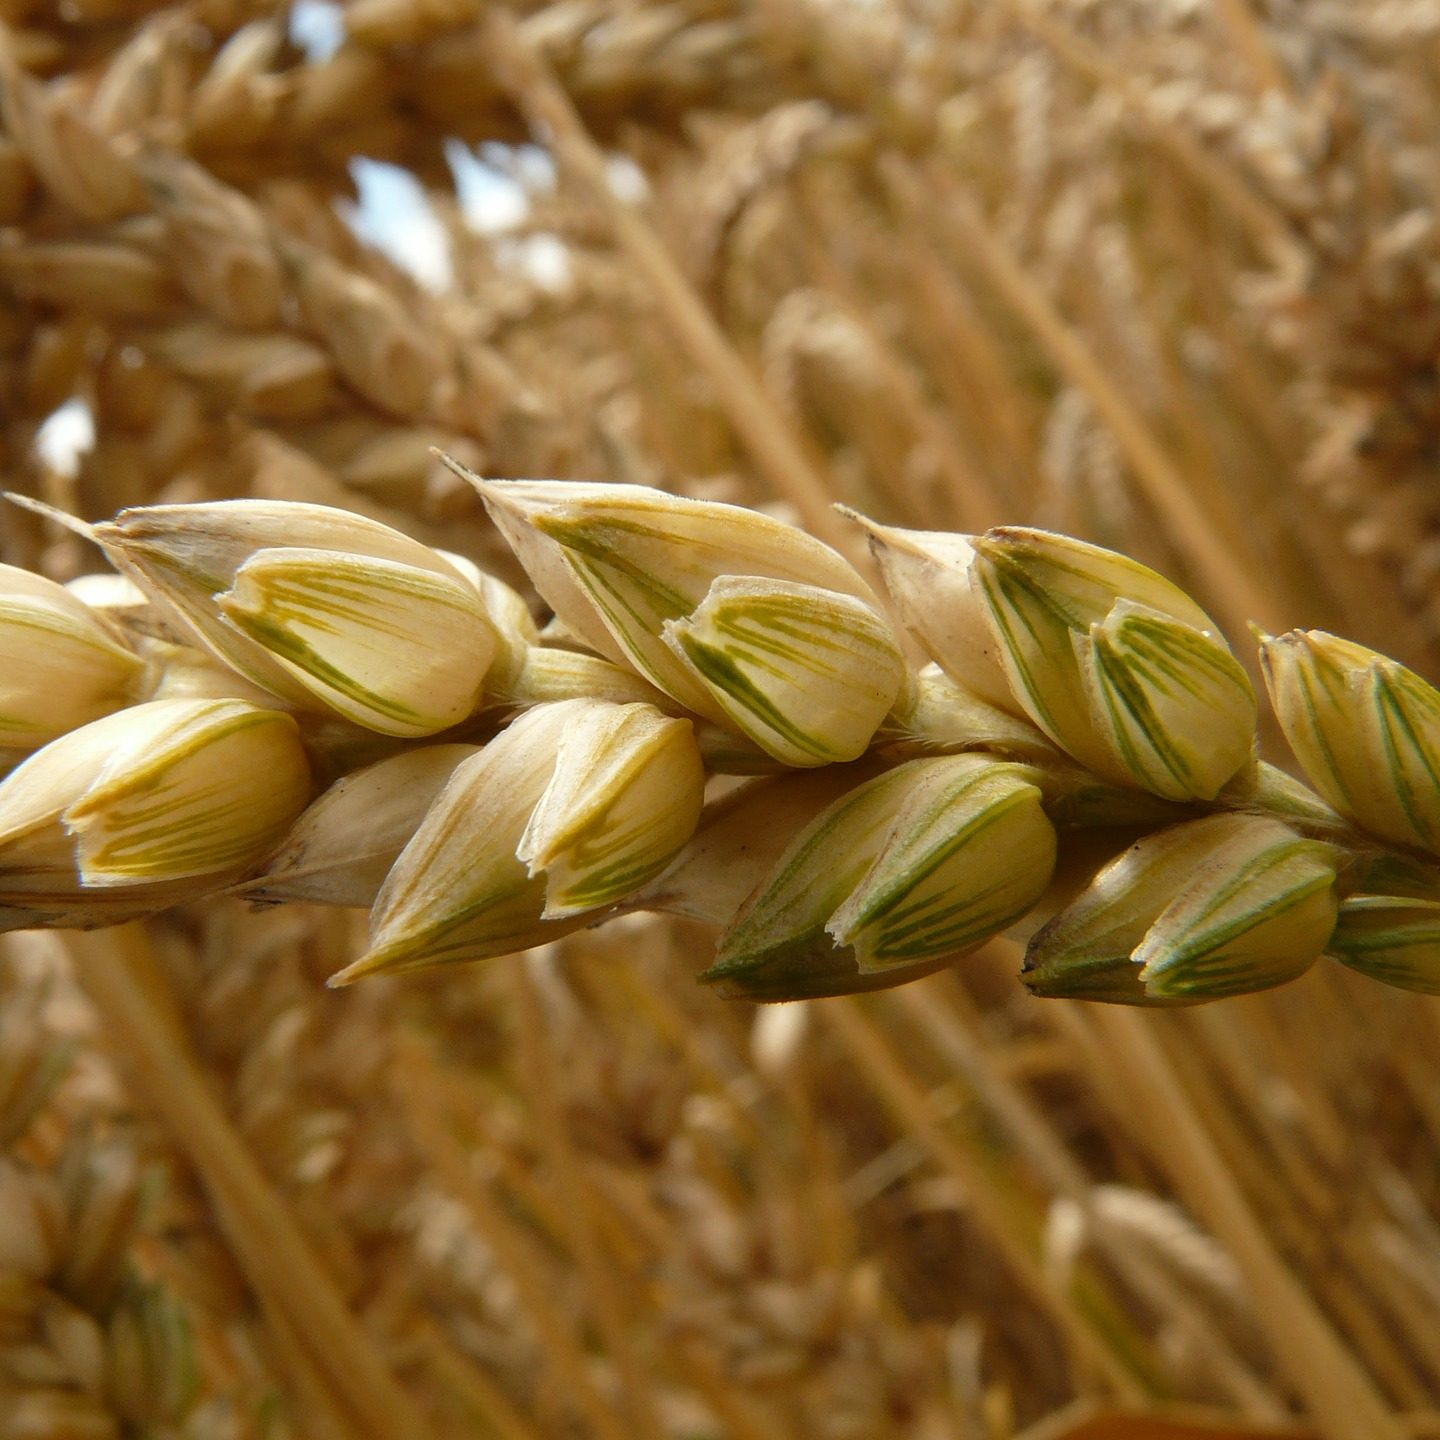 Study shows drought tolerant HB4 wheat compositionally equivalent to non-GM wheat